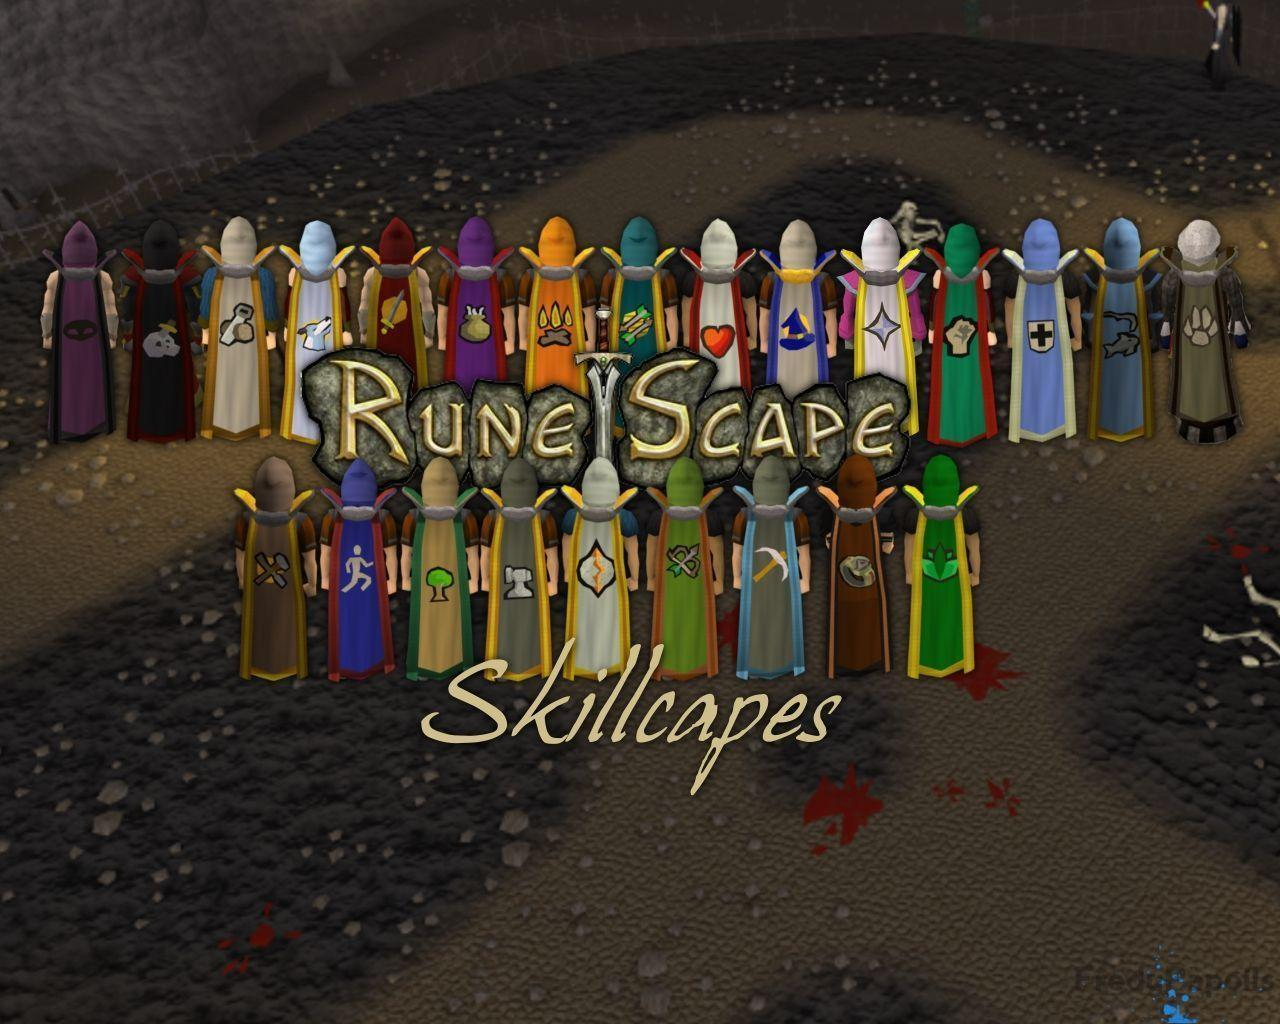 Runescape Wallpapers 44036 Wallpapers